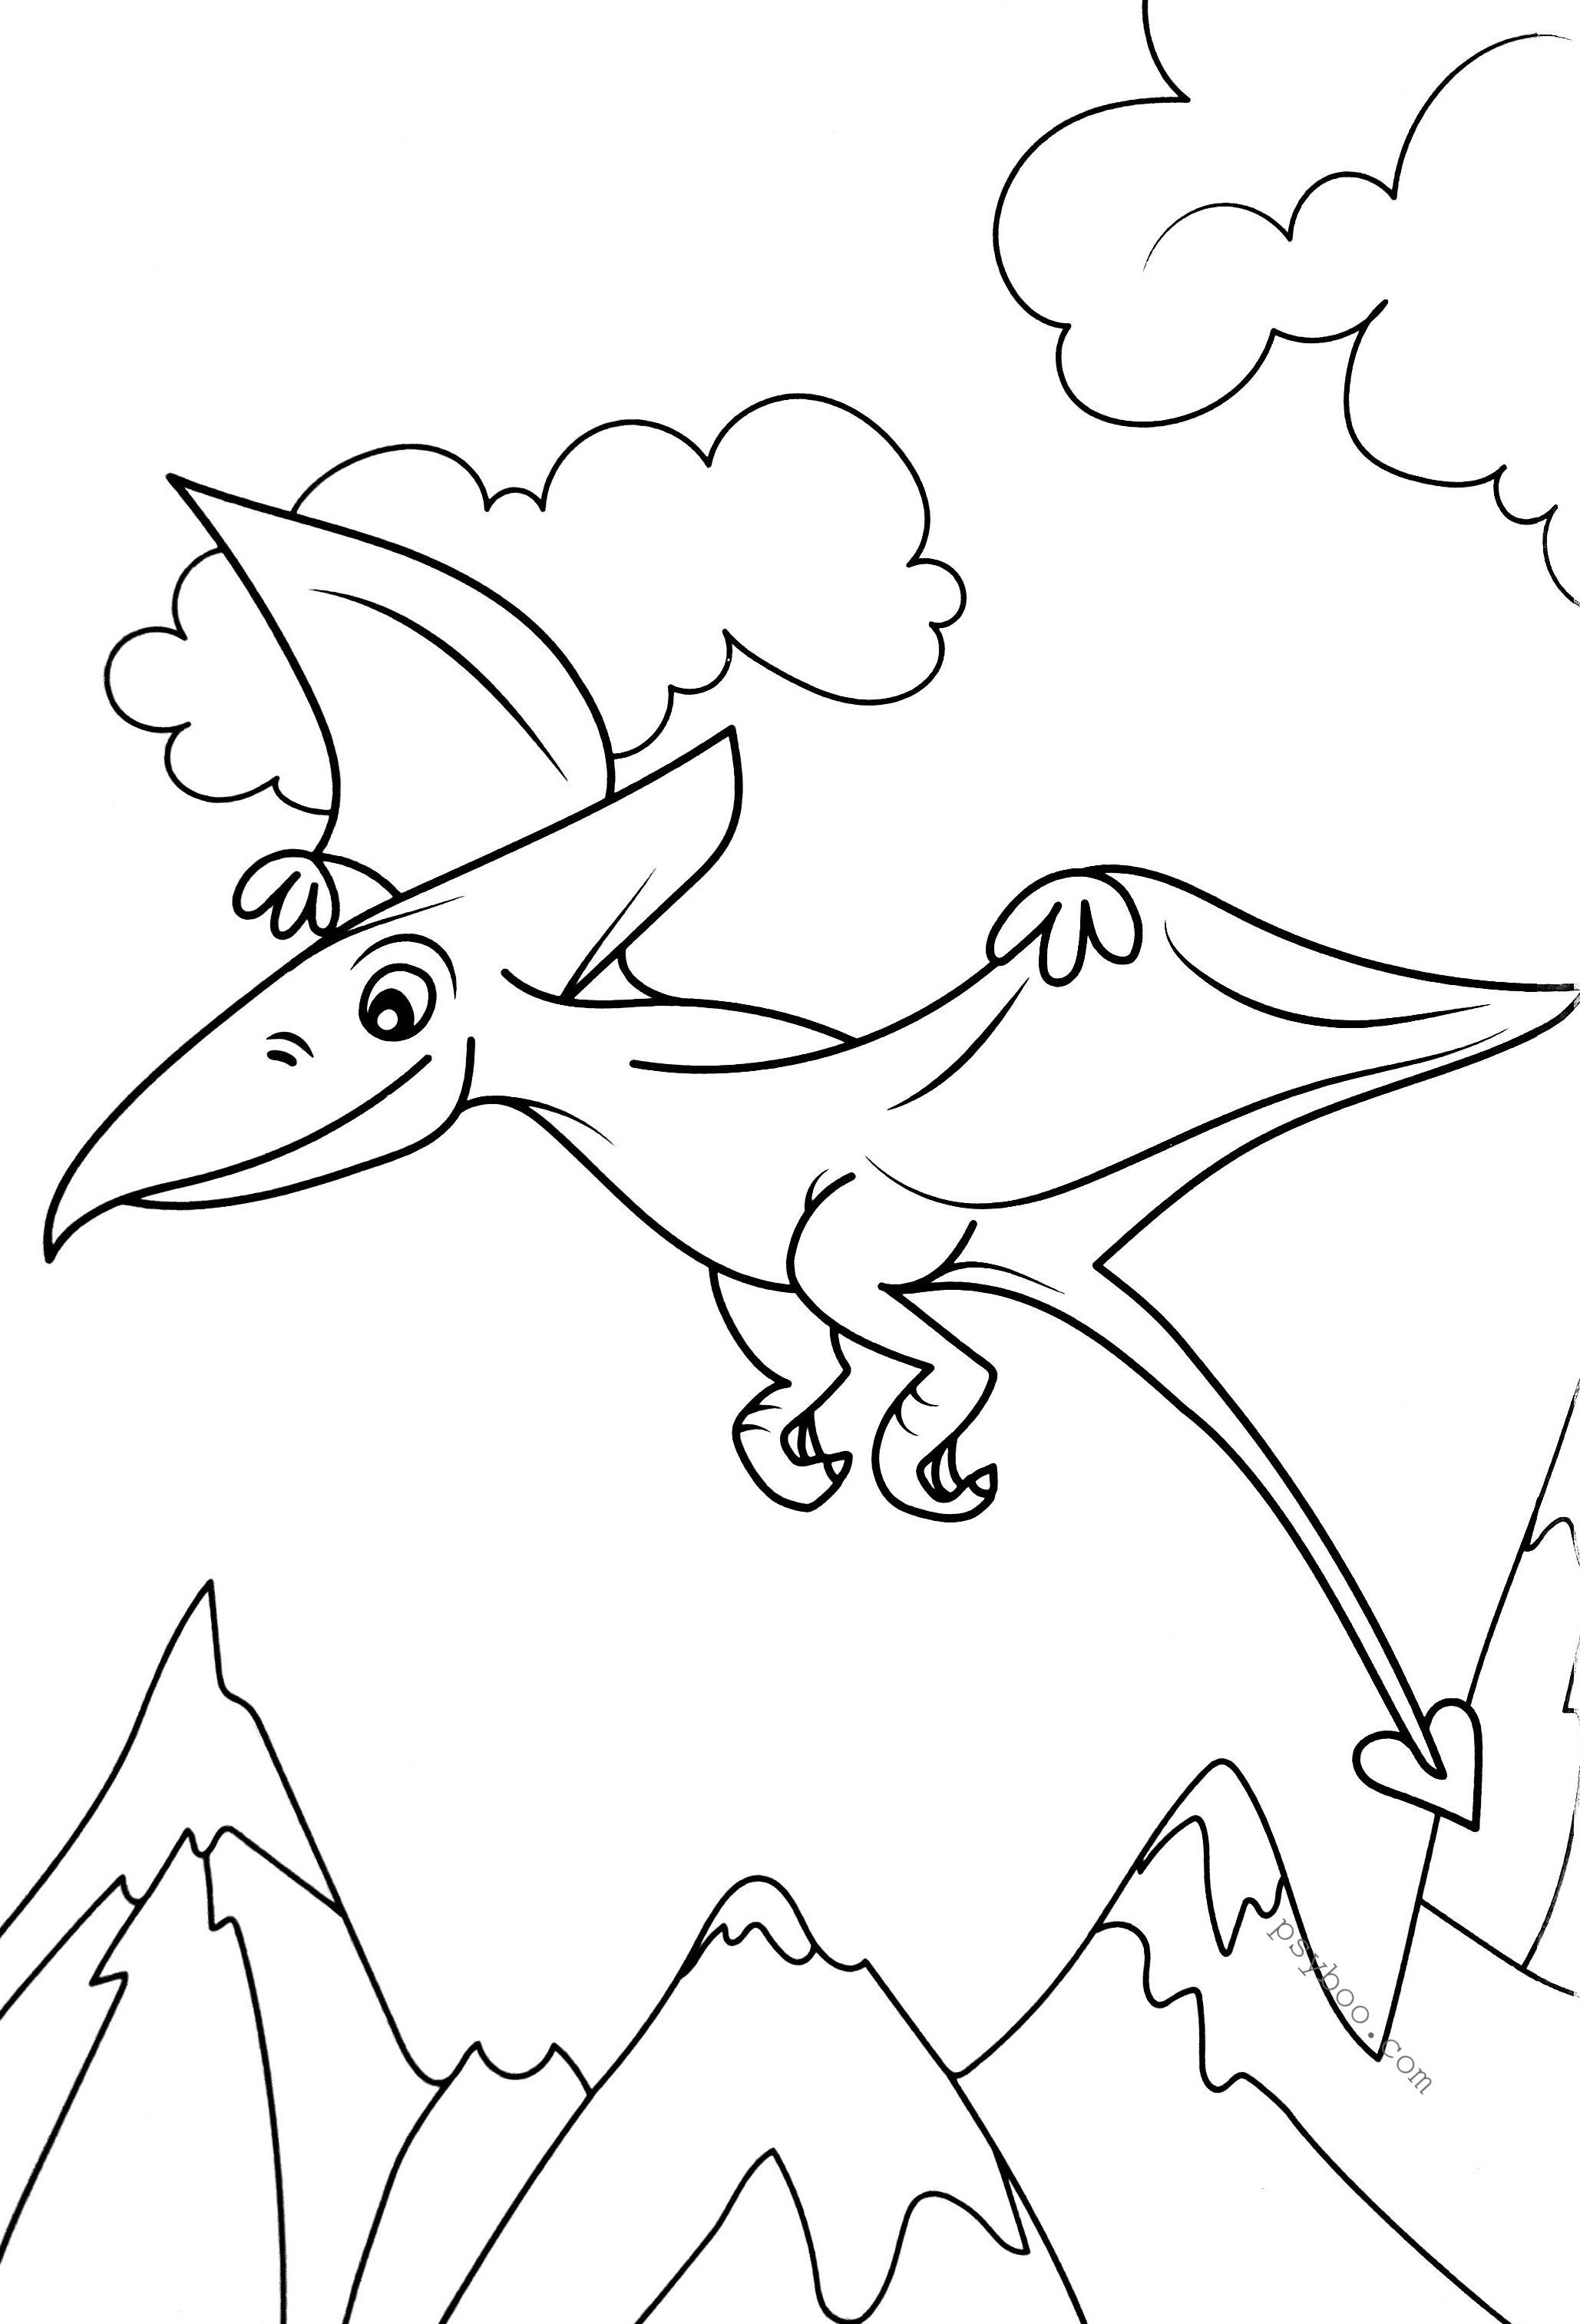 Little Dinosaur Pterodactyl Coloring Page For Free Dinosaur Coloring Pages Dinosaur Coloring Coloring Pages